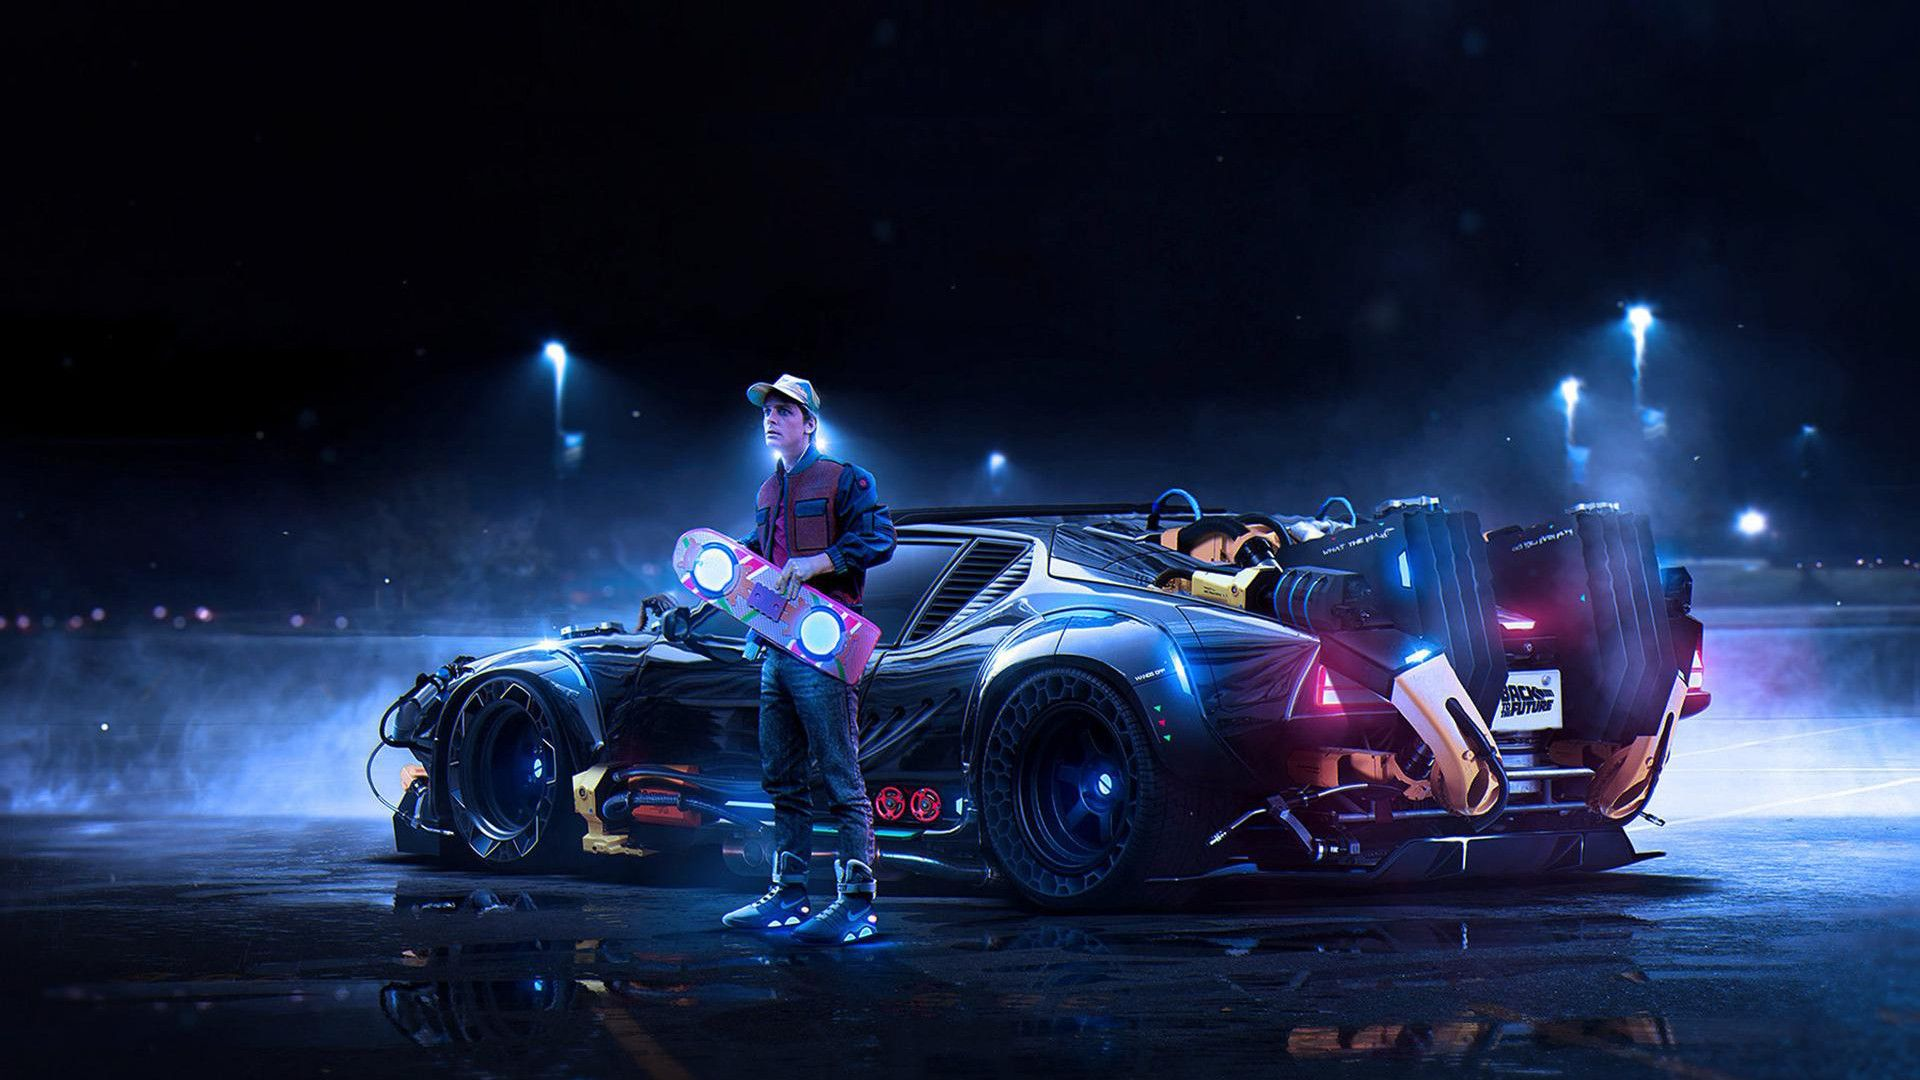 Skachat Oboi Nazad V Budushee Back To The Future Marty Mcfly Car